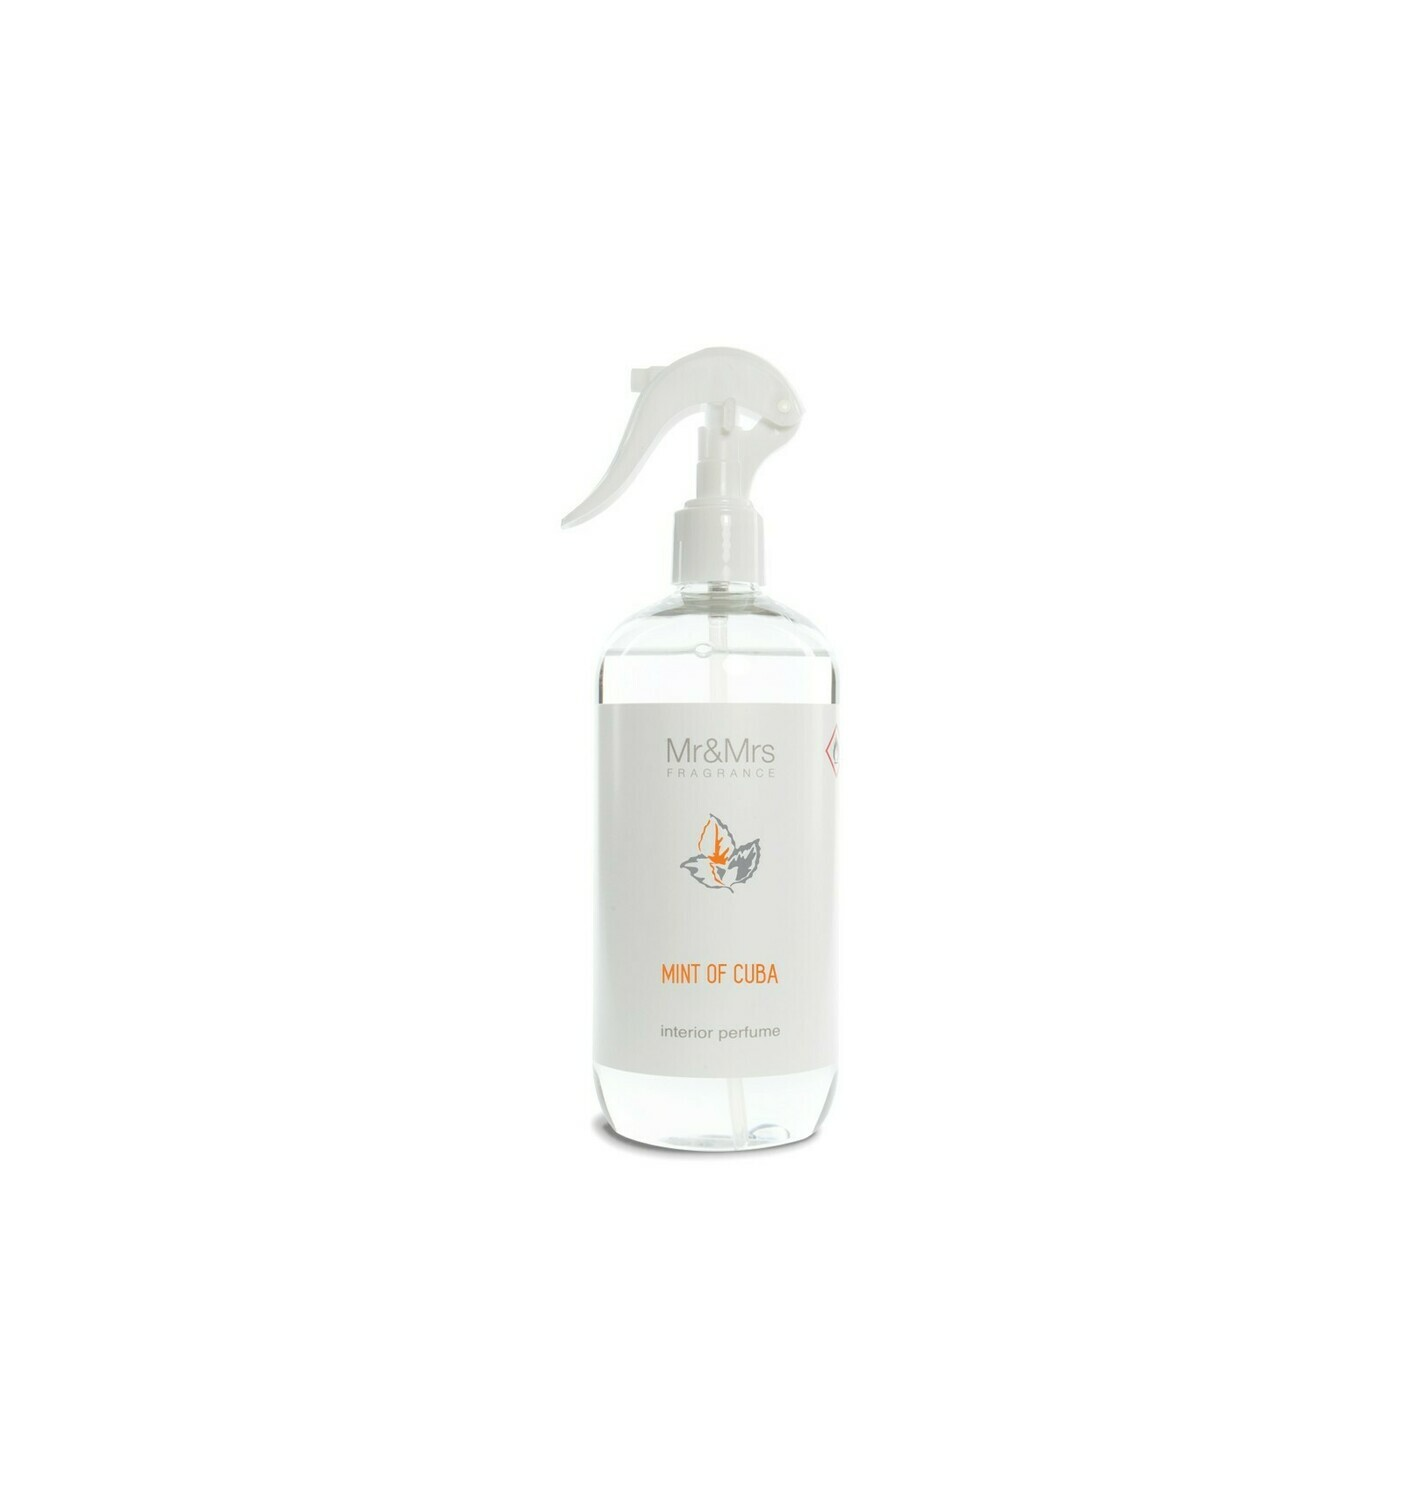 Mr And Mrs Fragrance Mint Of Cuba - 500ml Spray Ambiance & Textile